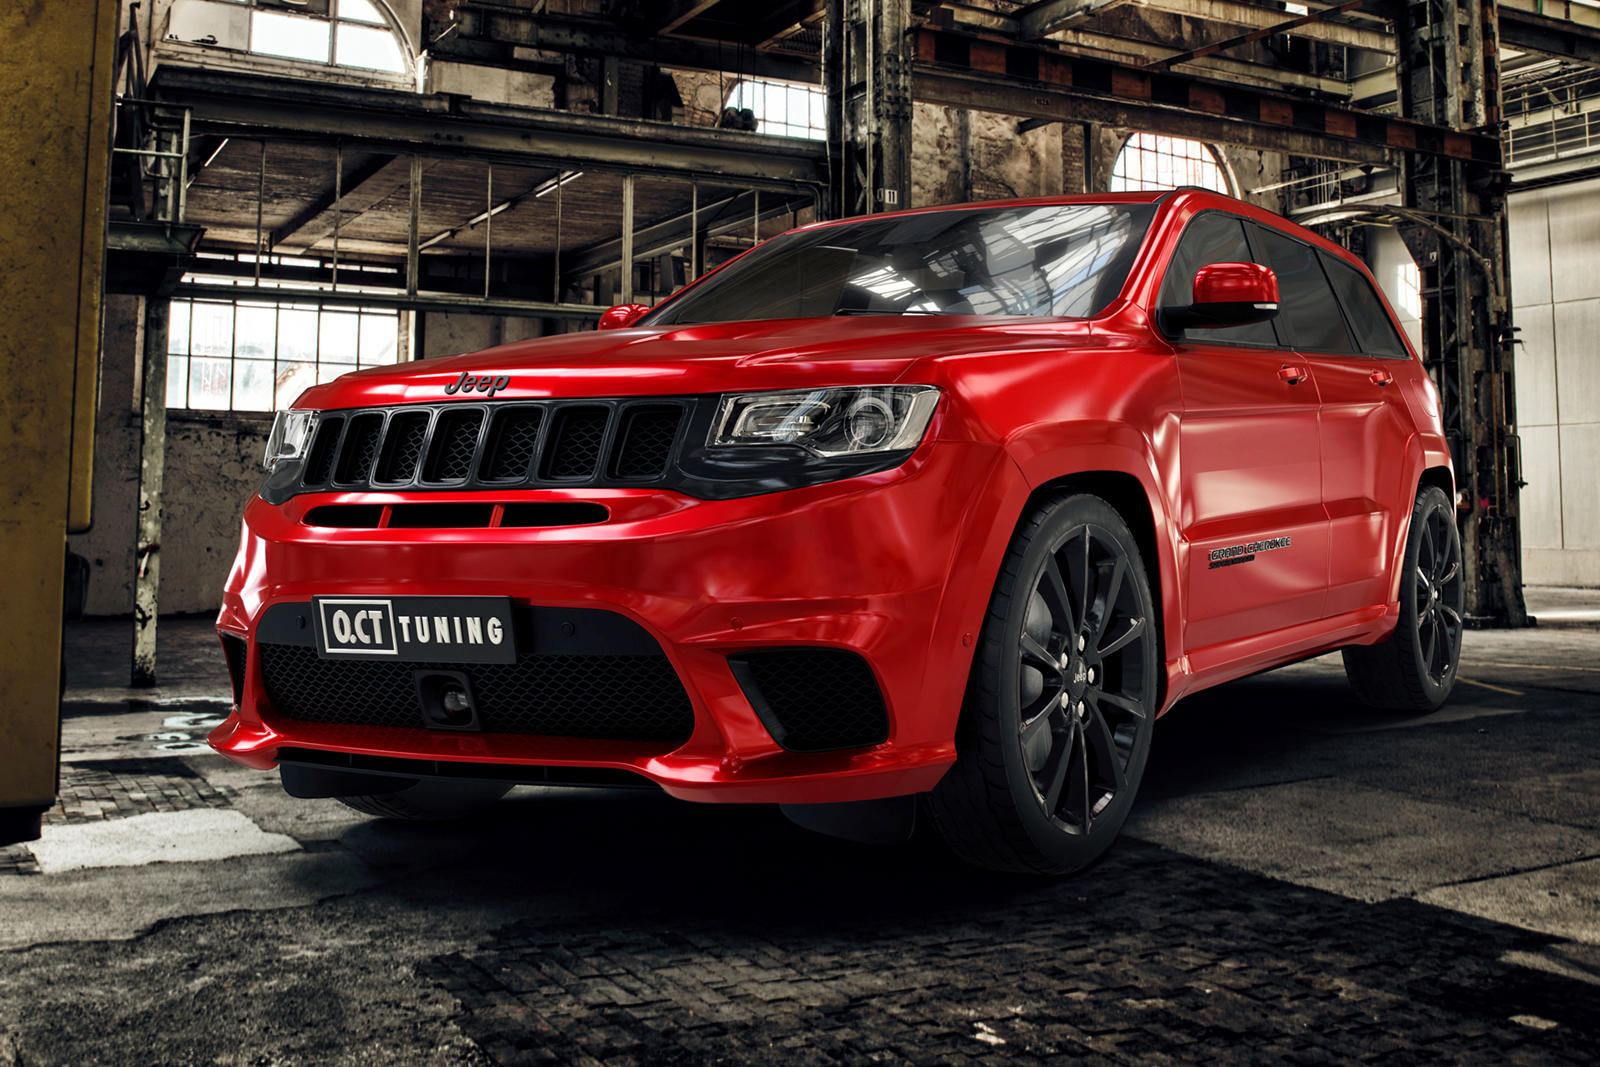 888 Hp Jeep Trackhawk Hellhound Delivers Supercar Performance Carbuzz